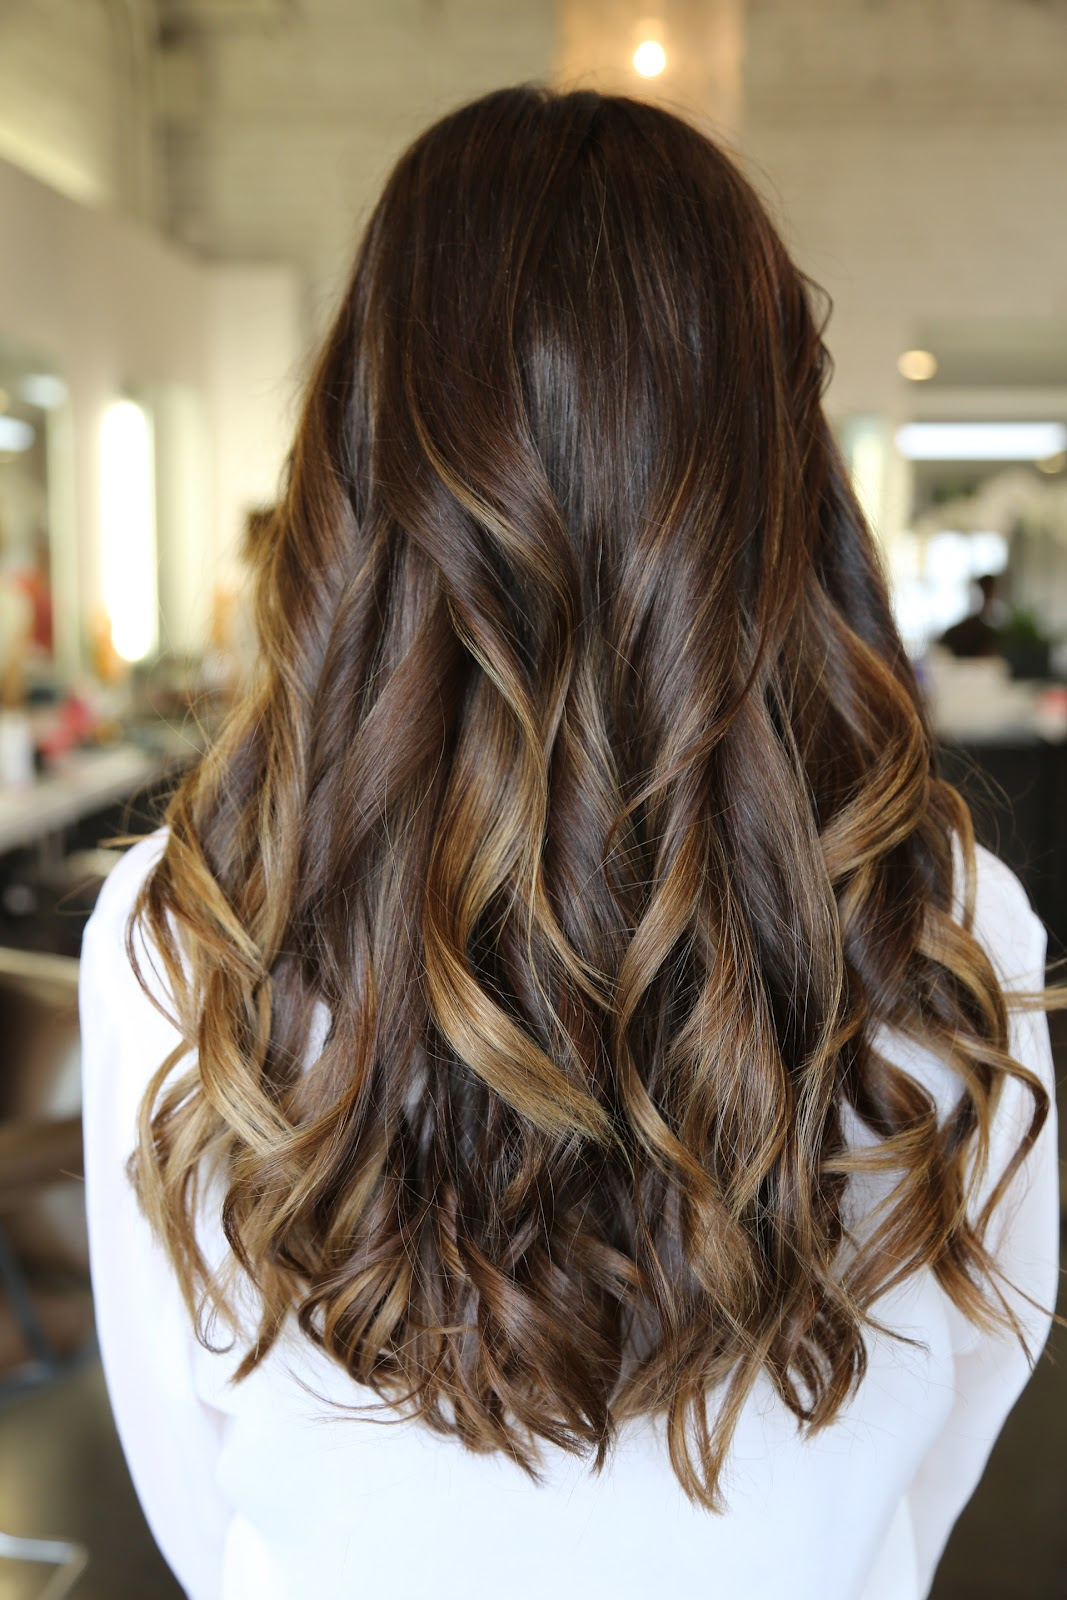 Rich Brunette and Caramel Highlights | Neil George